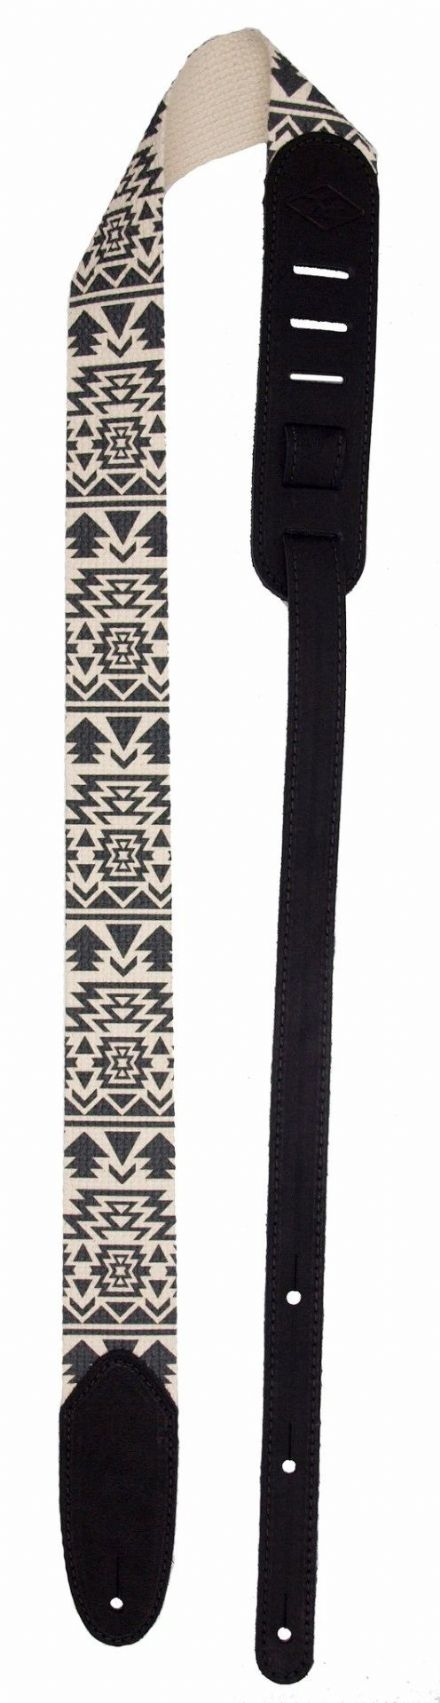 LM Cotton 2 Inch Southwest Guitar Strap